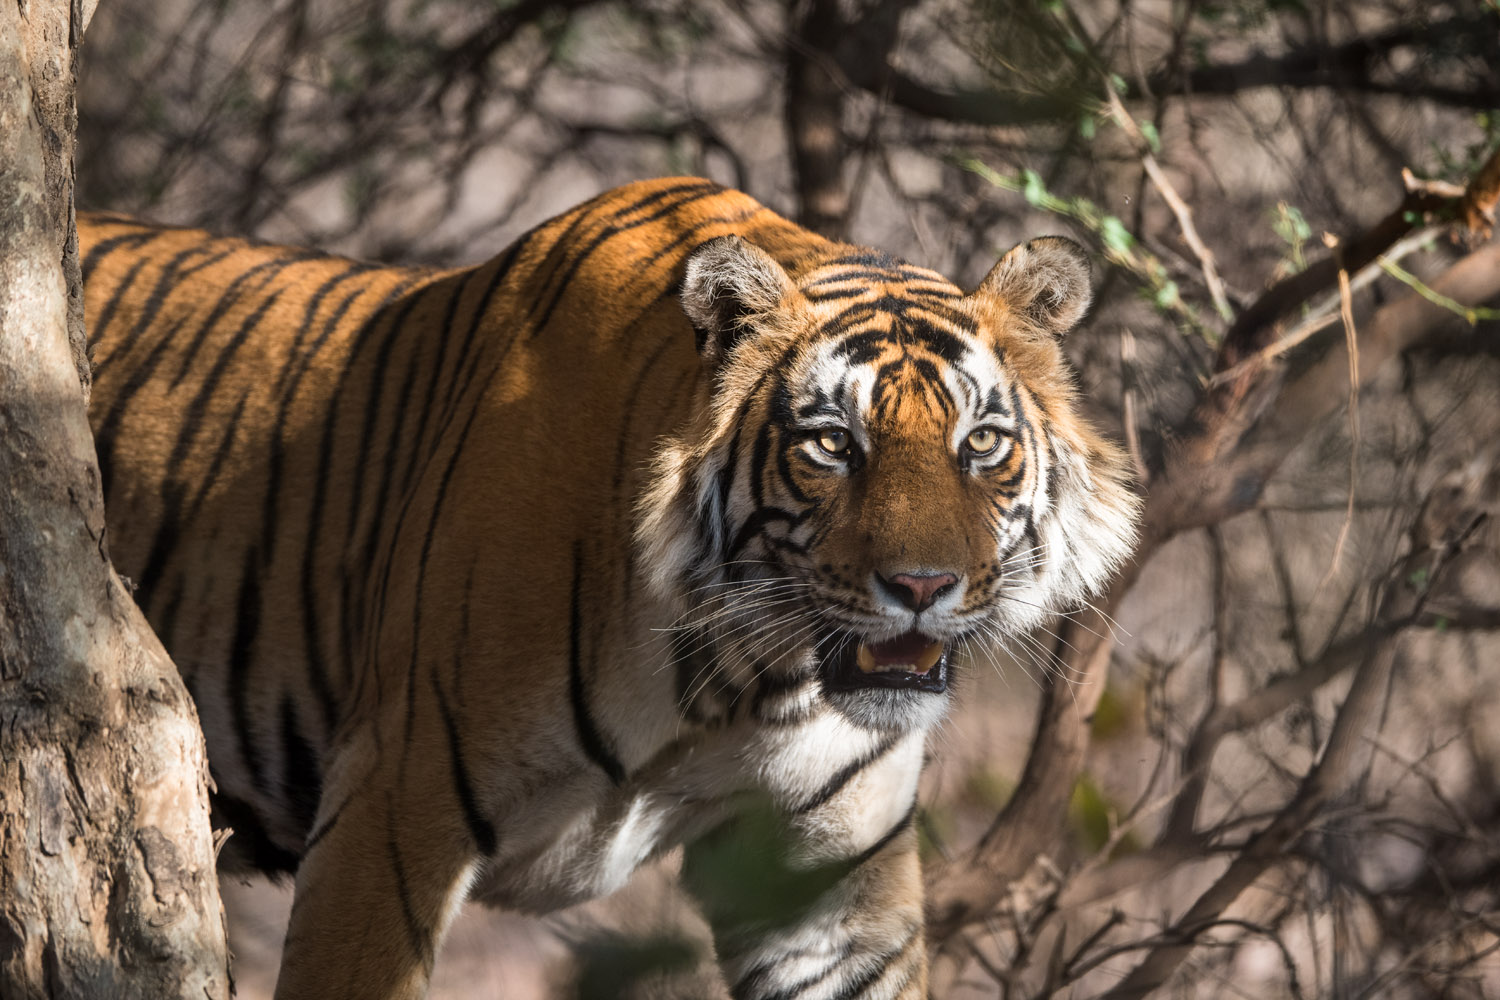 Bengal tiger emerging from forest, Ranthambhore National Park, Rajasthan, India